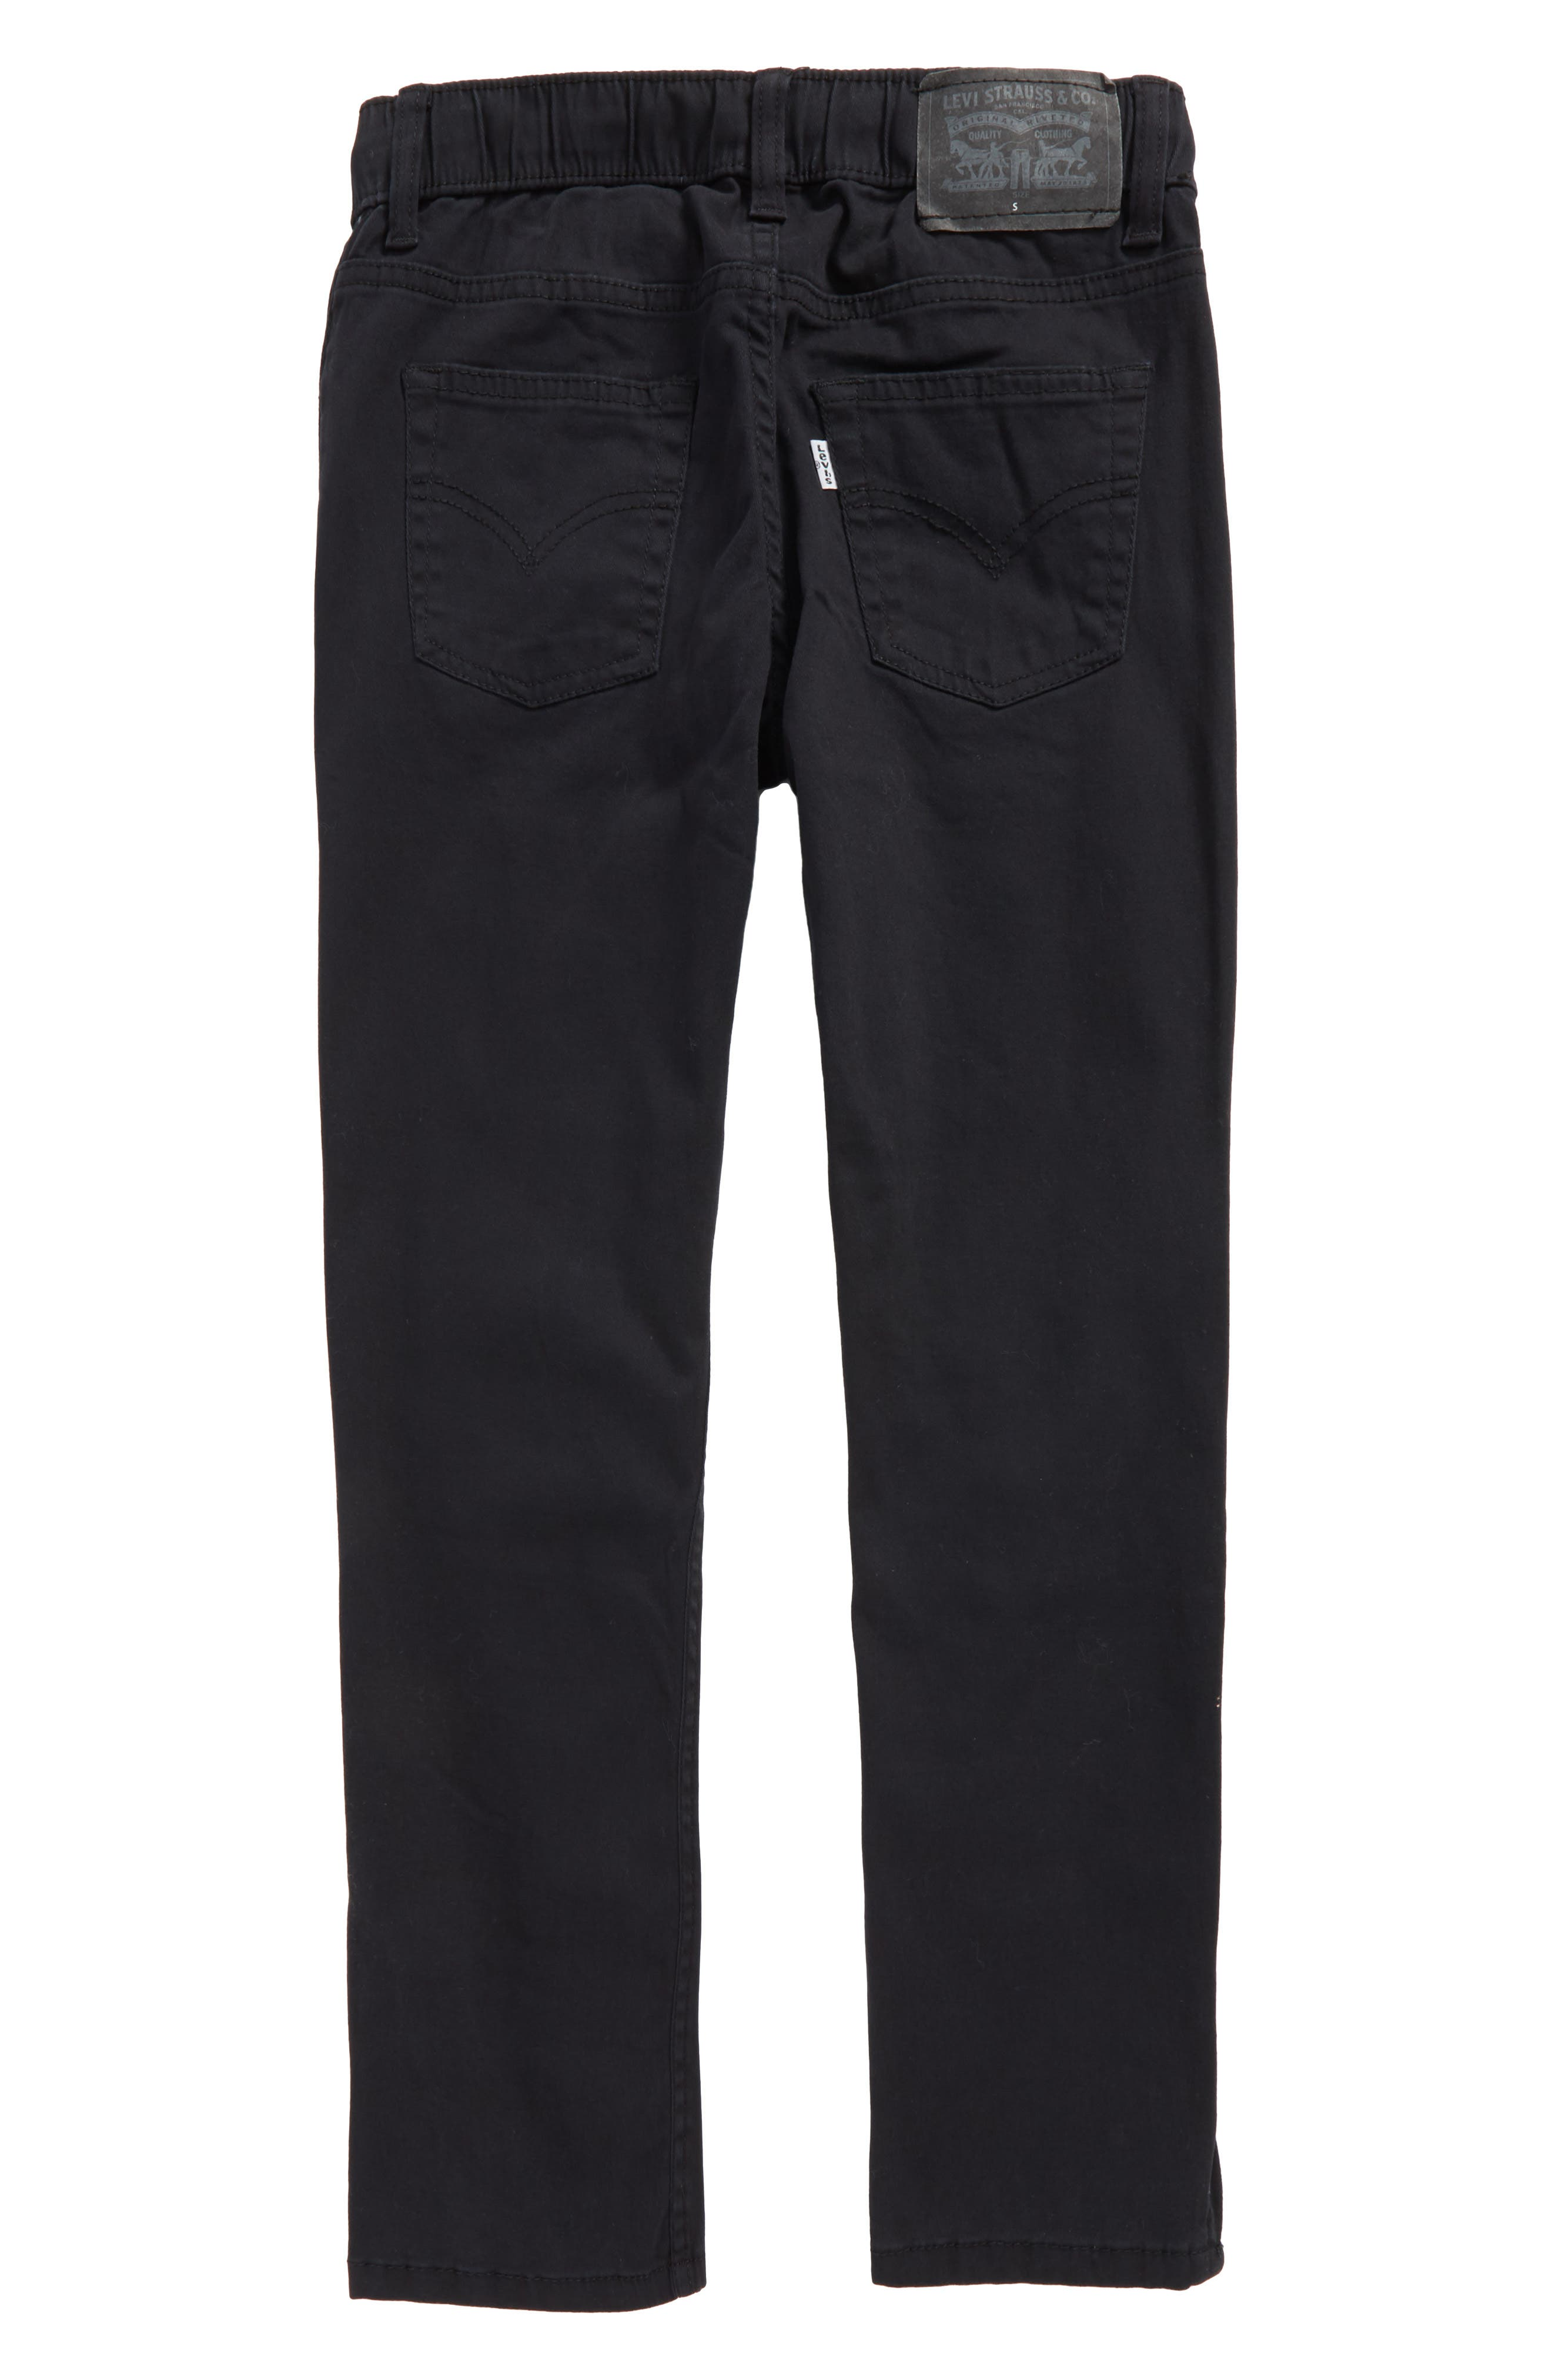 Zip Cuff Pull-On Pants,                             Alternate thumbnail 2, color,                             001